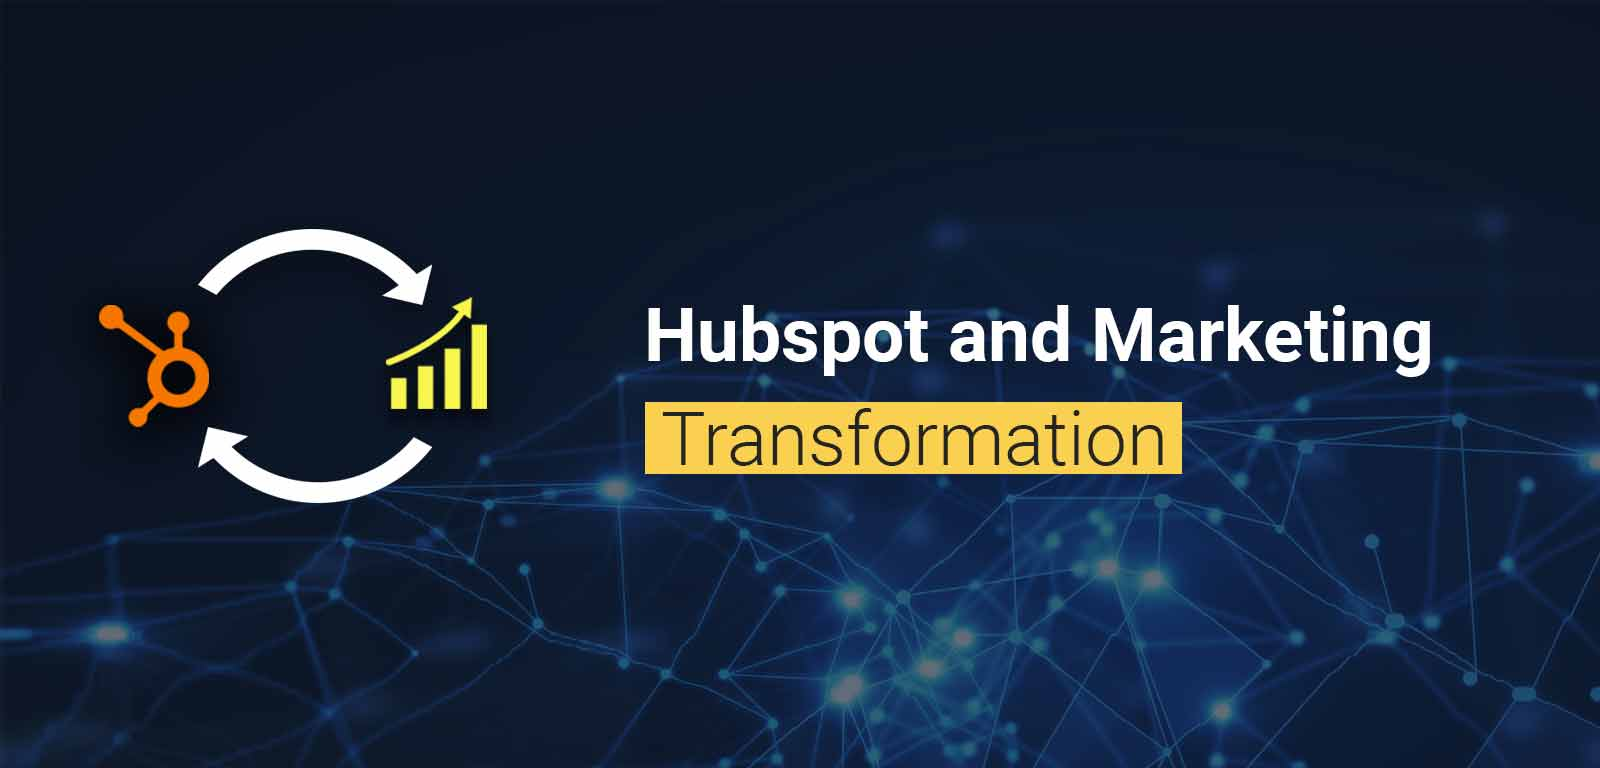 Hupspot and Marketing Transformation